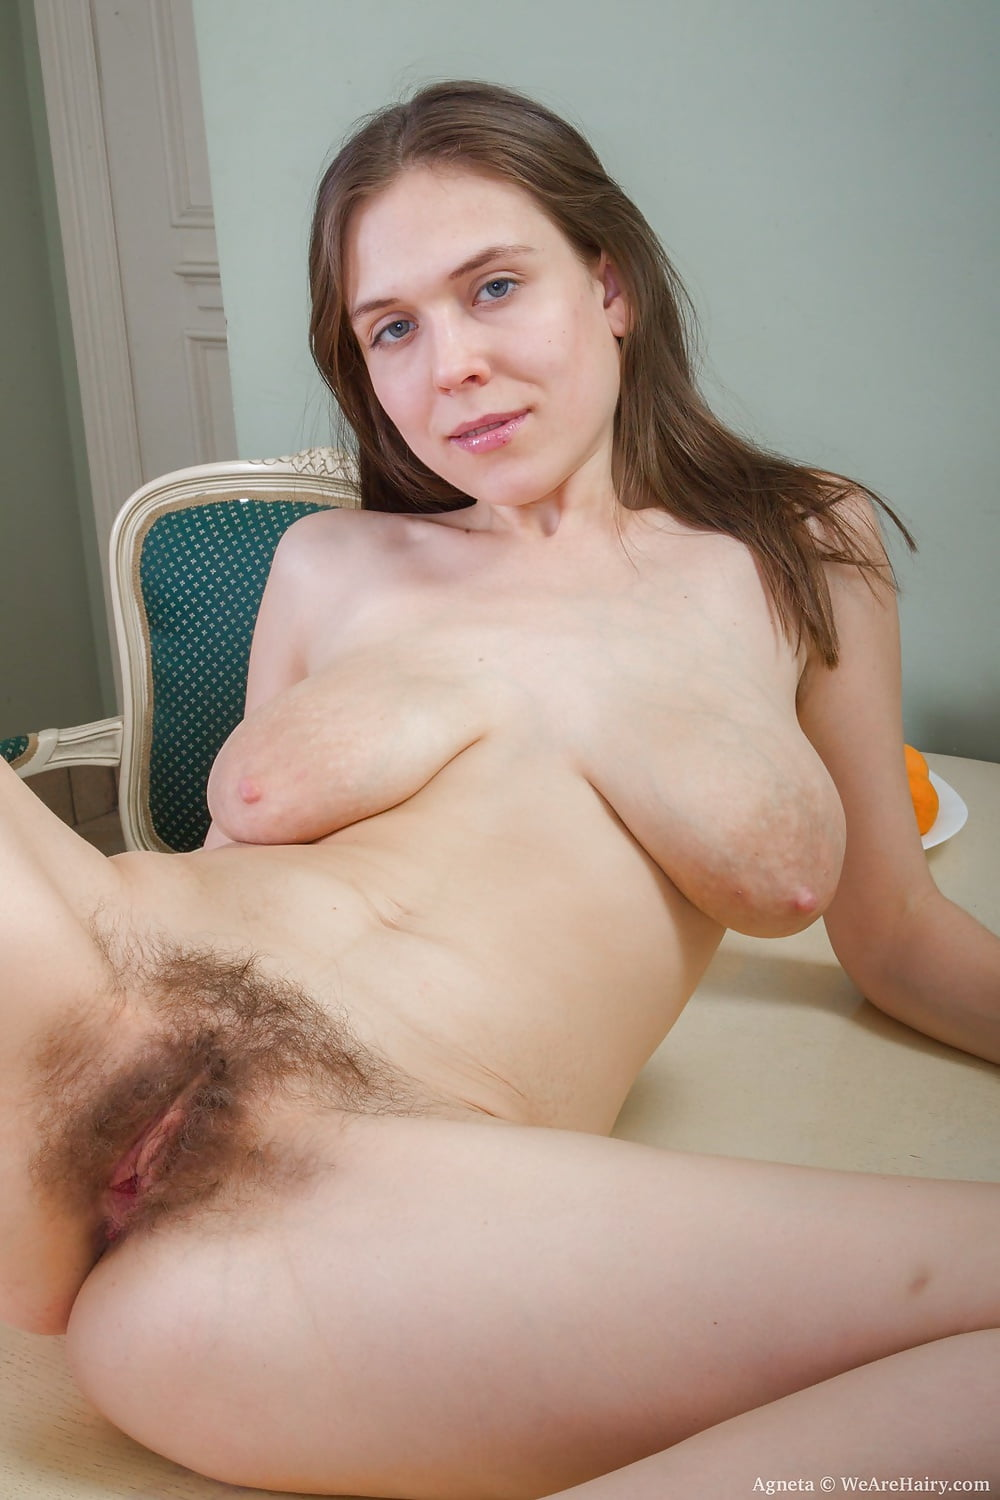 Large breasts hairy pussy fine sex pictures hd